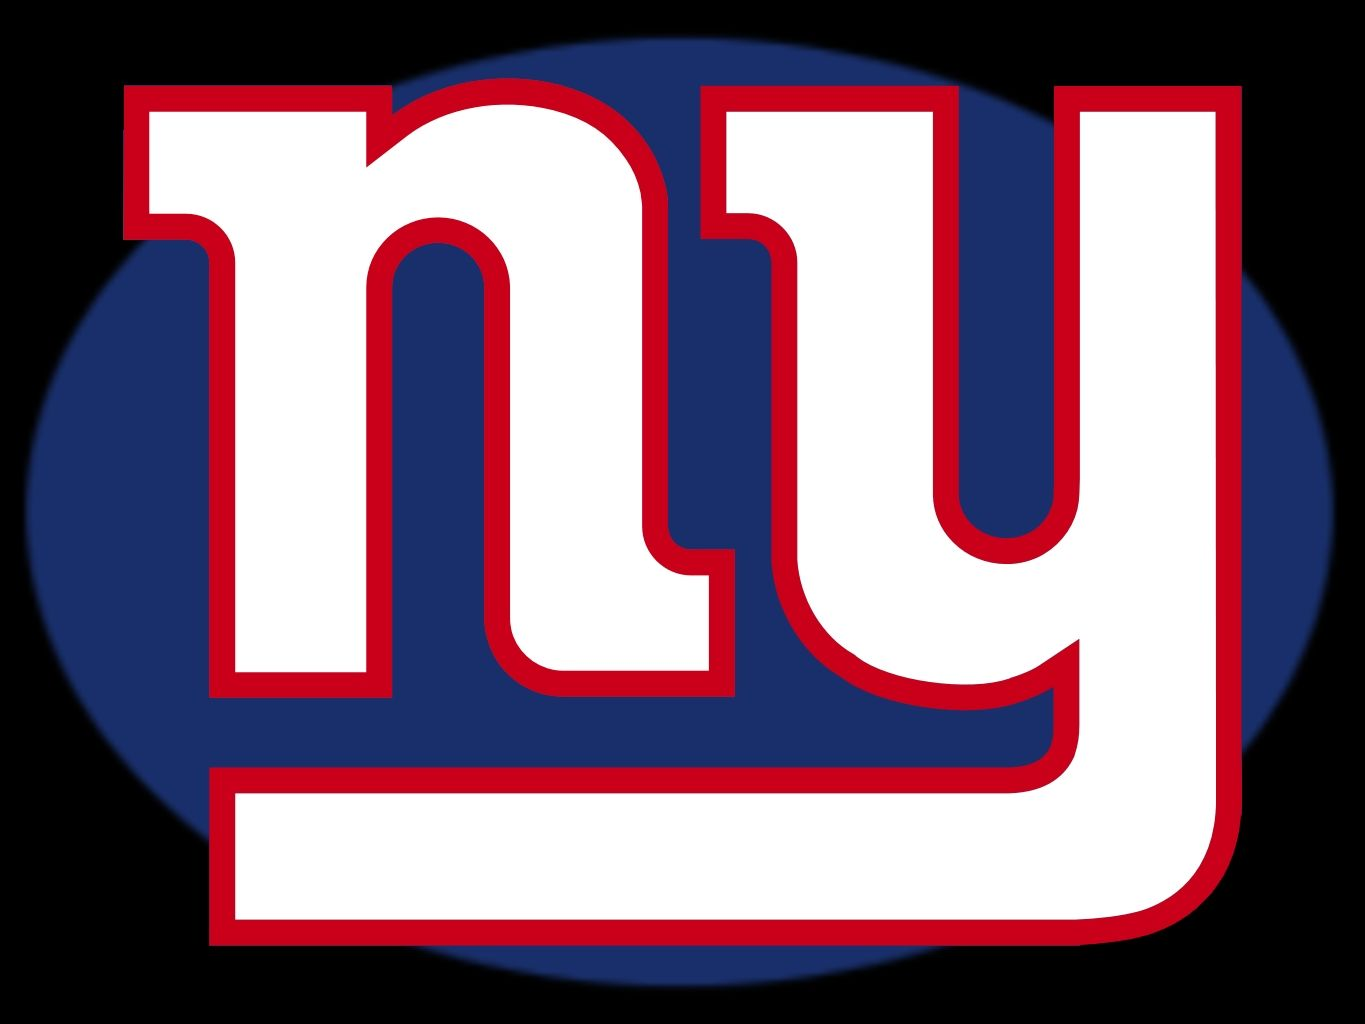 [[start Tab]] Description Great As A Bedroom Accent, Or For The Family Room  When Watching The Game, This New York Giants NFL Toss Pillow Is Made From  ...